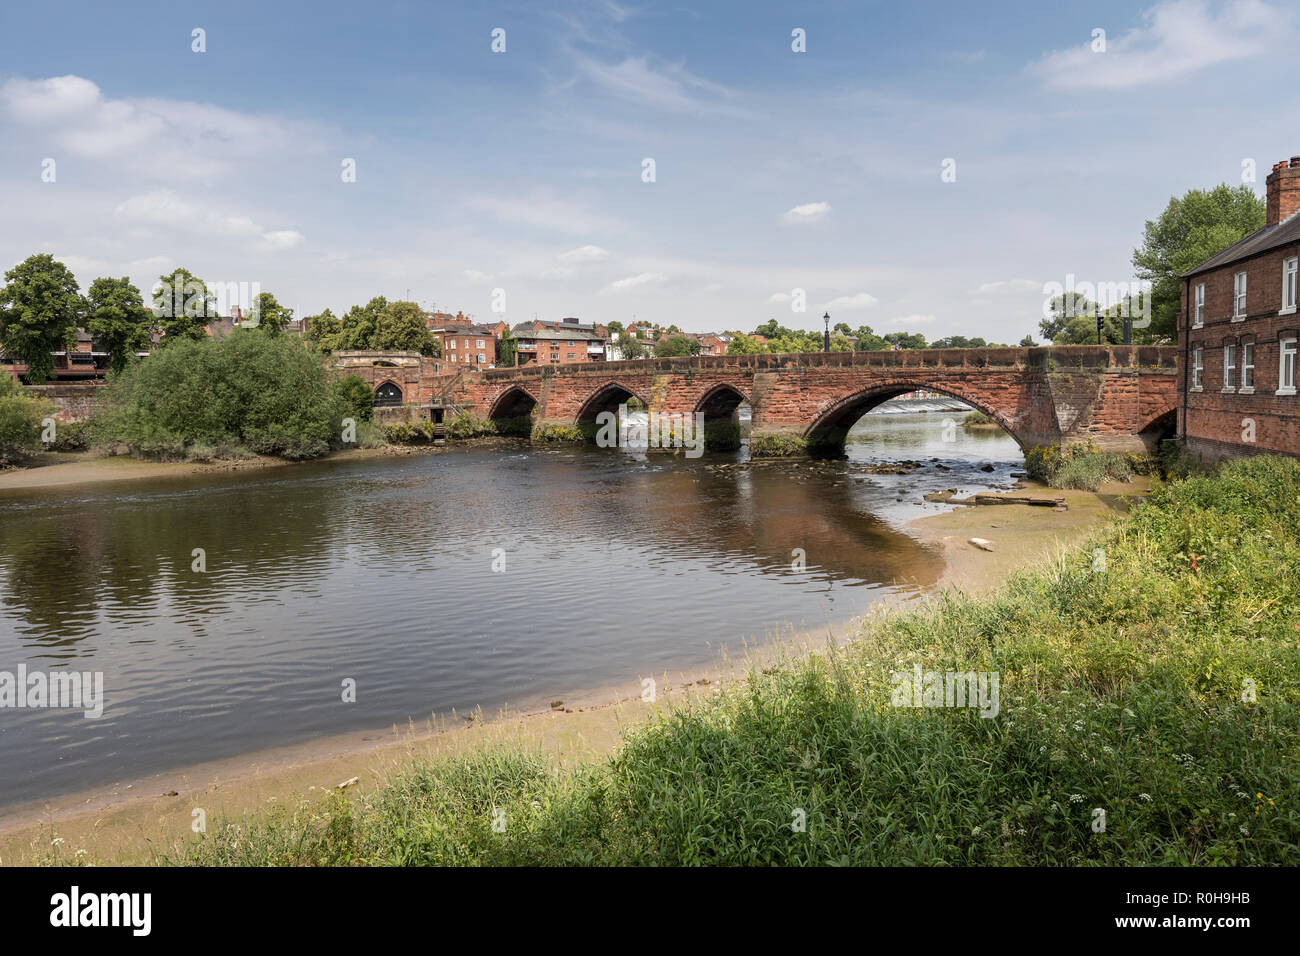 Old Dee Bridge over the river Dee in Chester, Cheshire, England, UK Stock Photo